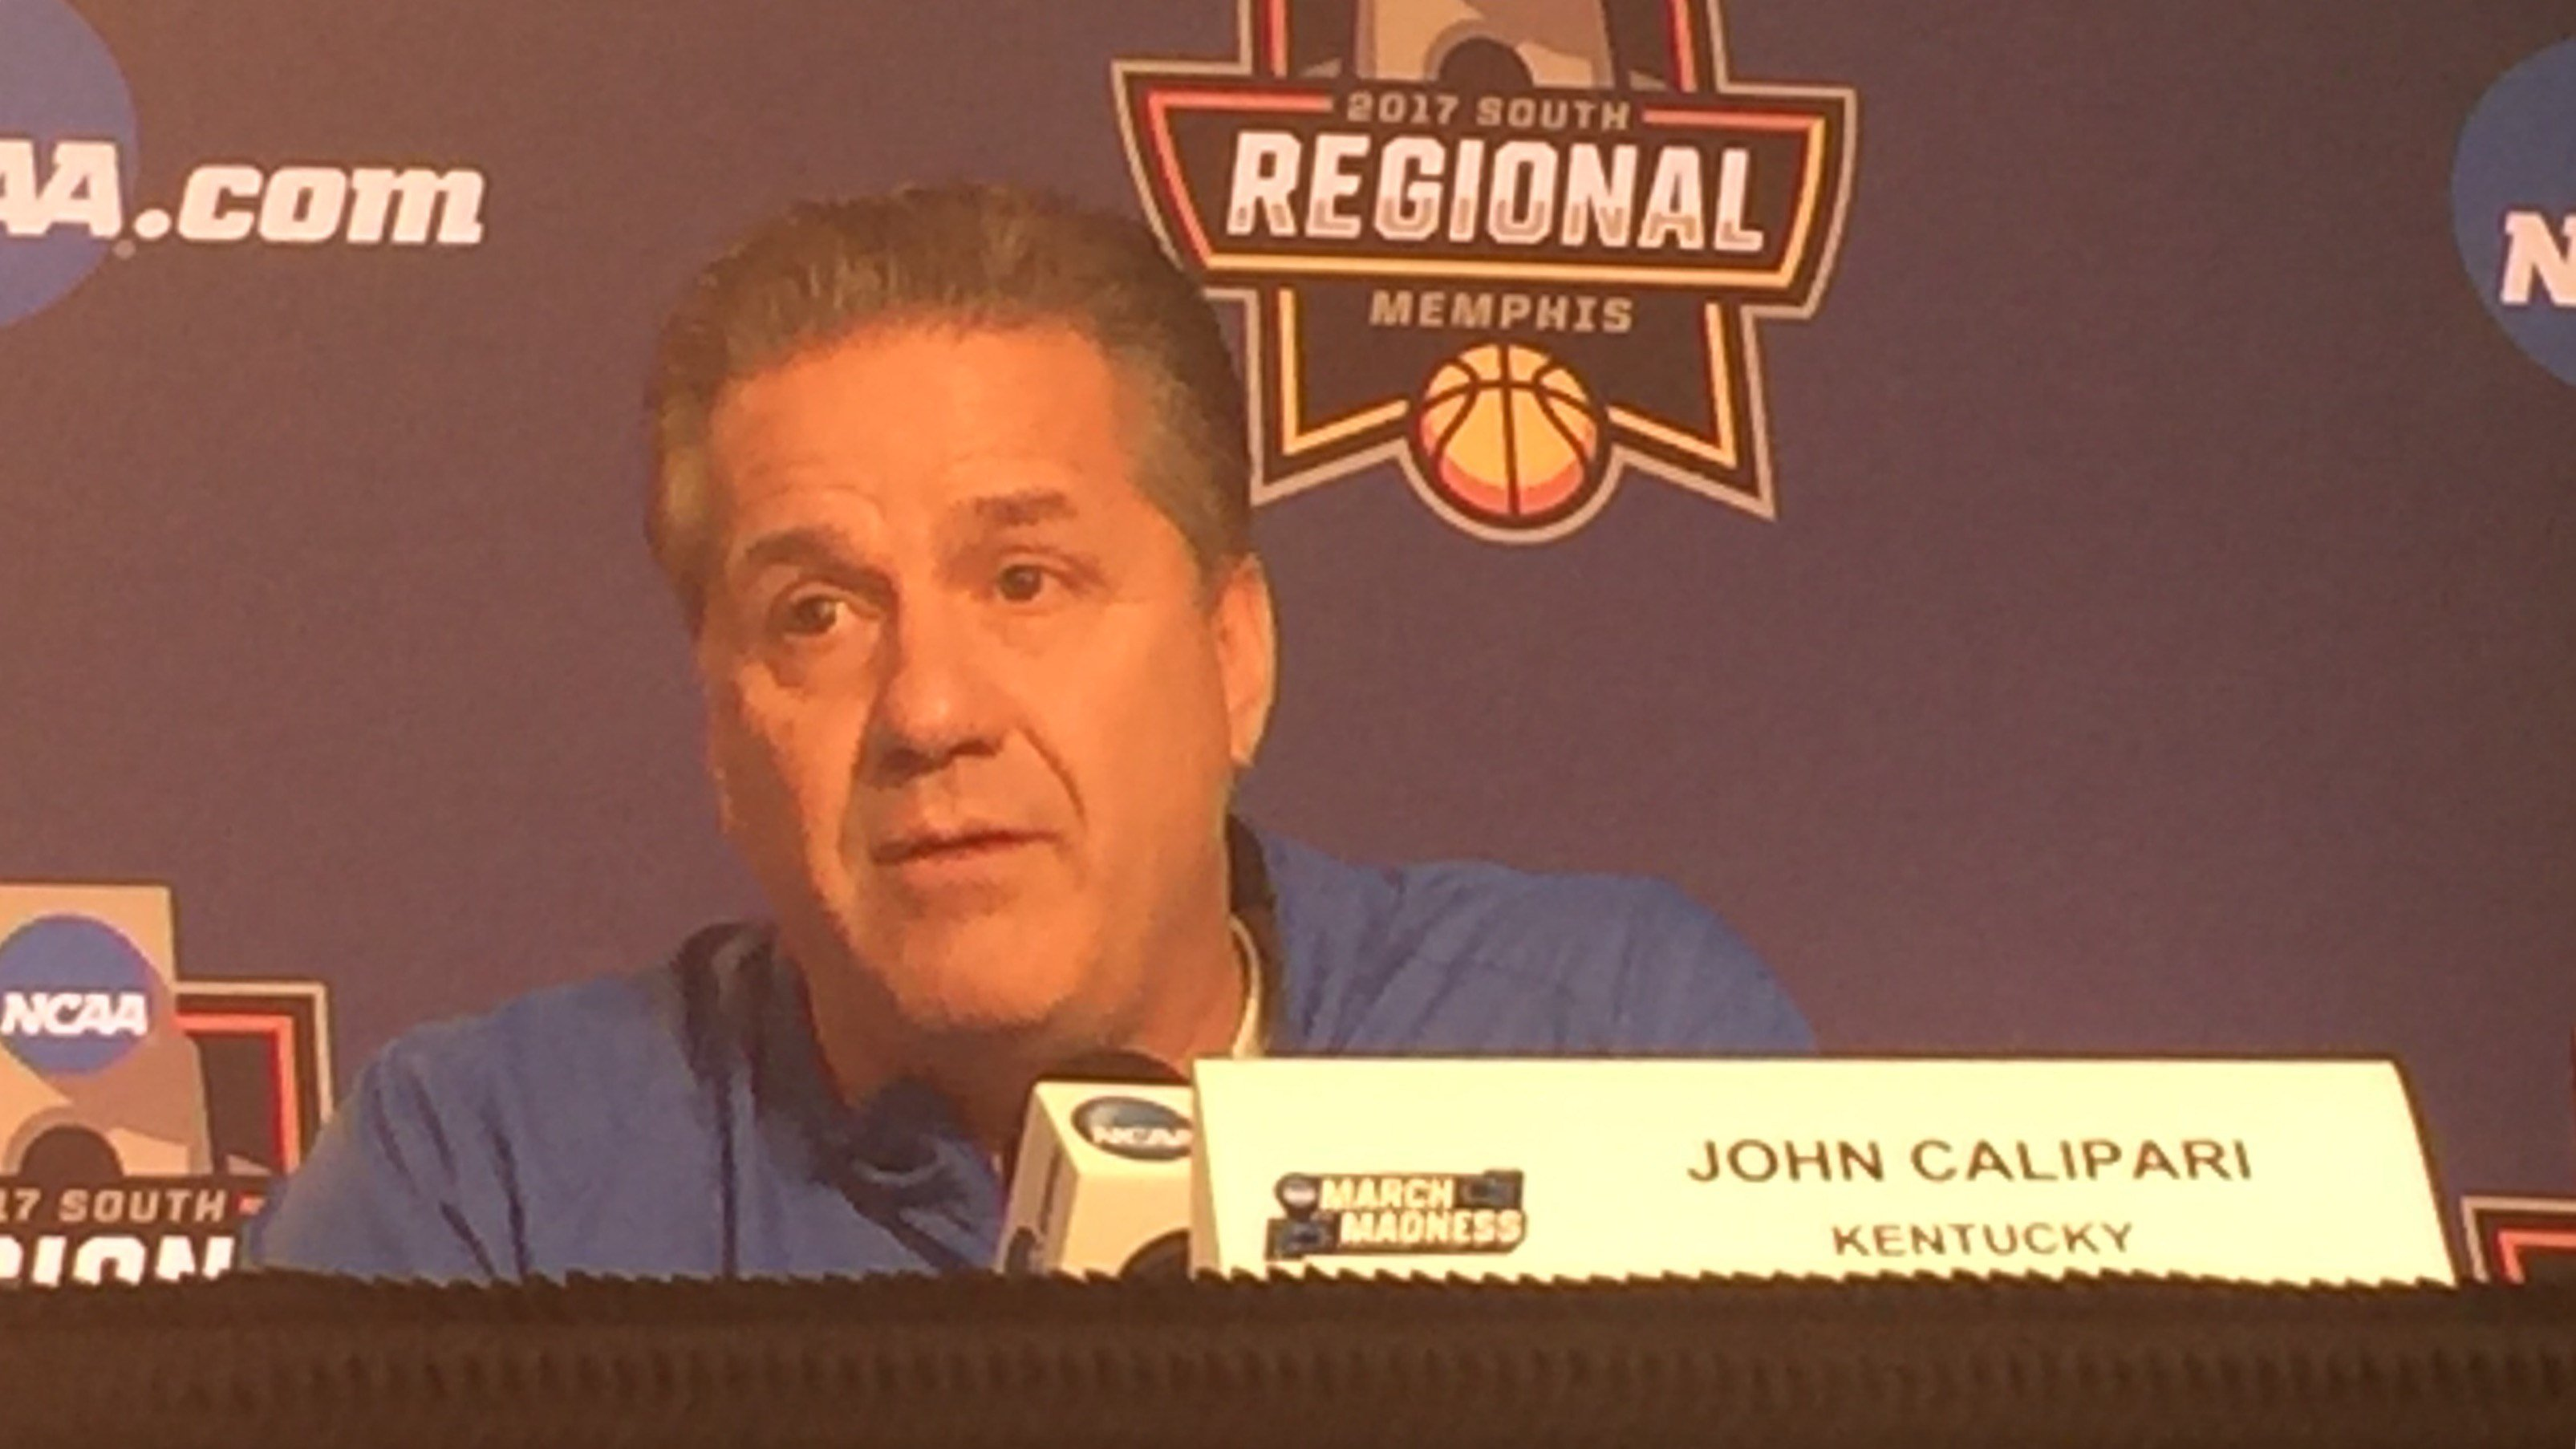 Will John Calipari's streak of producing at least one NBA Draft Top 10 pick end next spring?